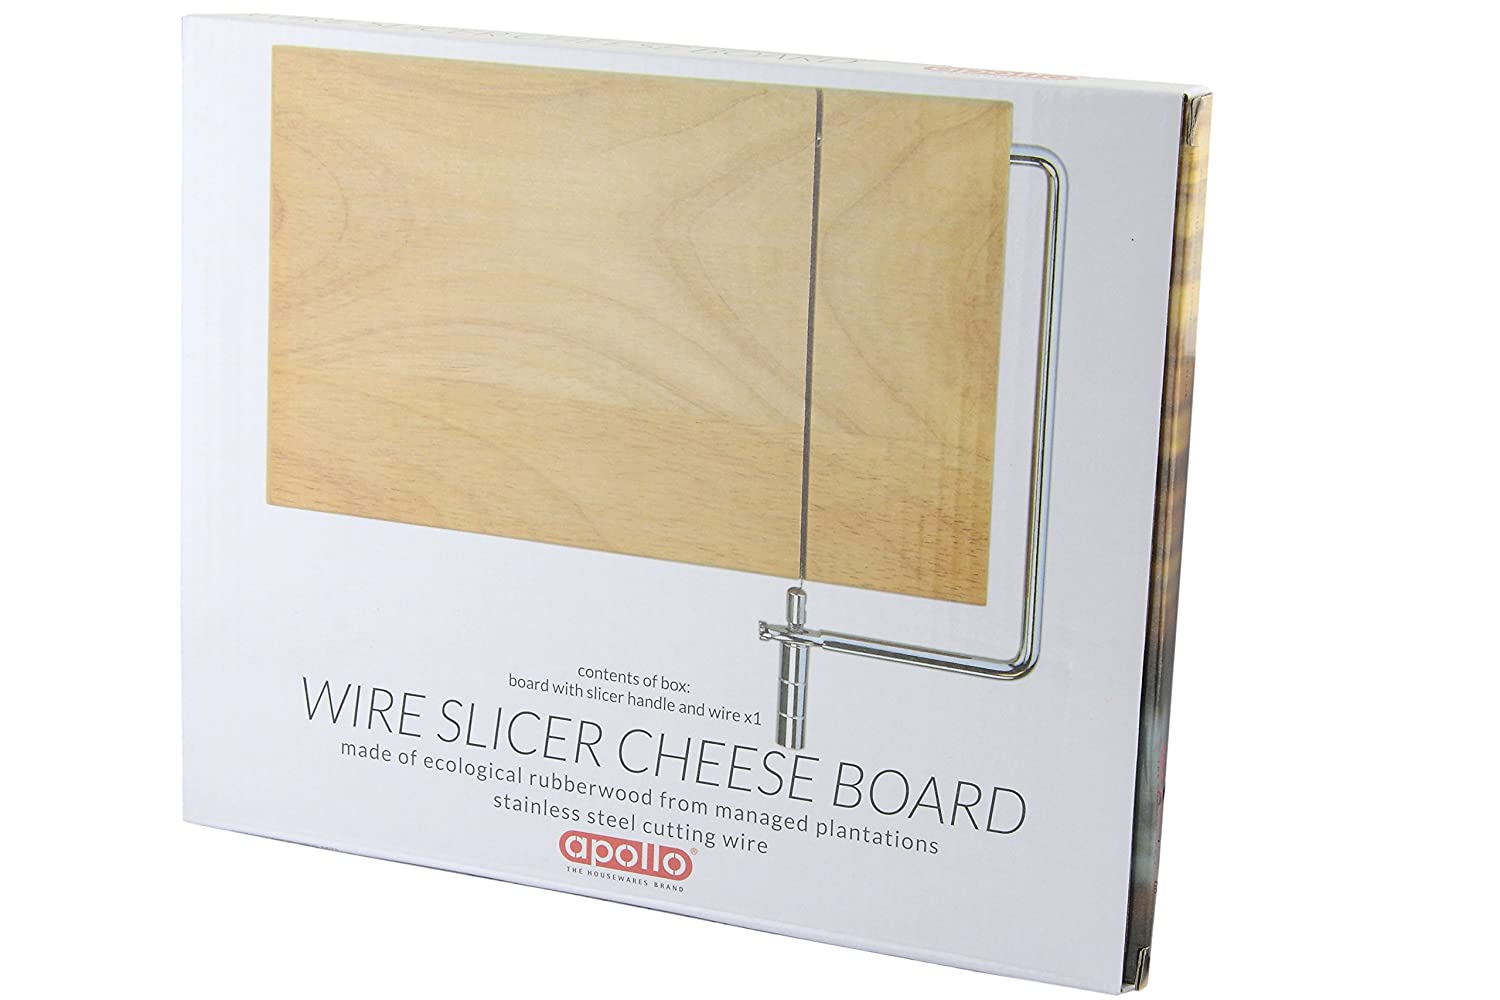 Apollo Rb Cheese Board with Wire: Amazon.co.uk: Kitchen & Home